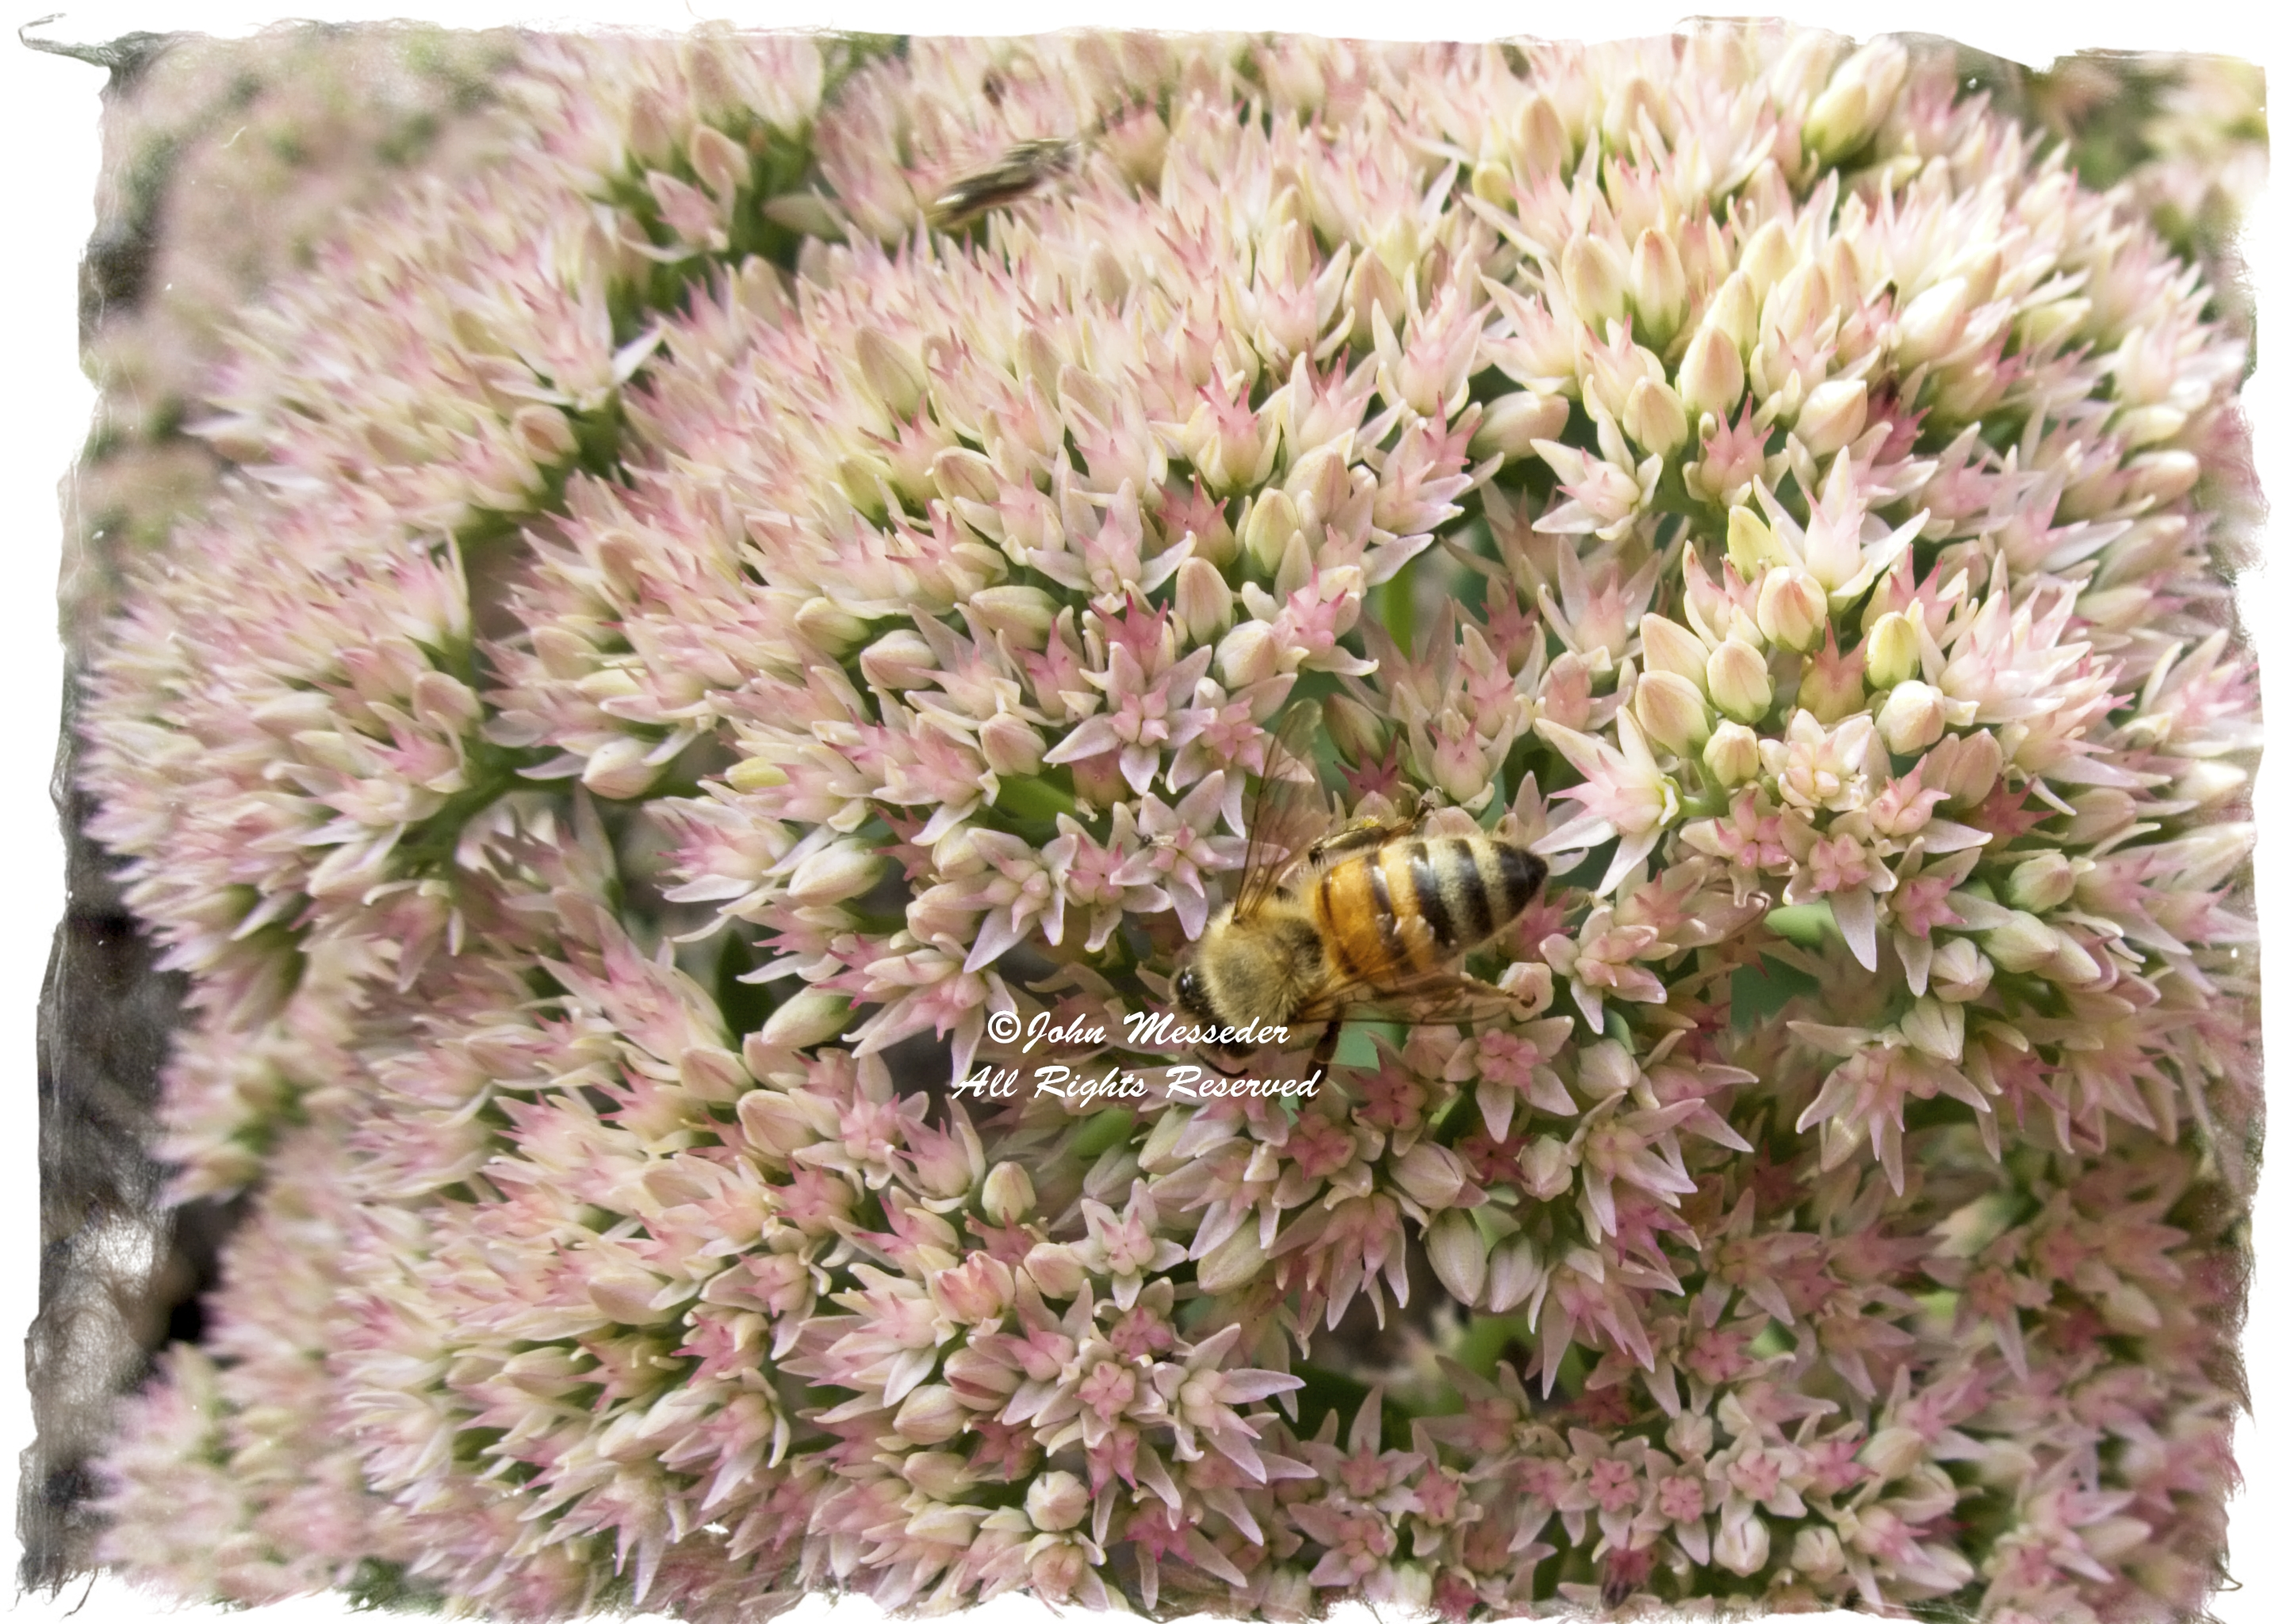 Honey bee pollinates a sedum bloom.